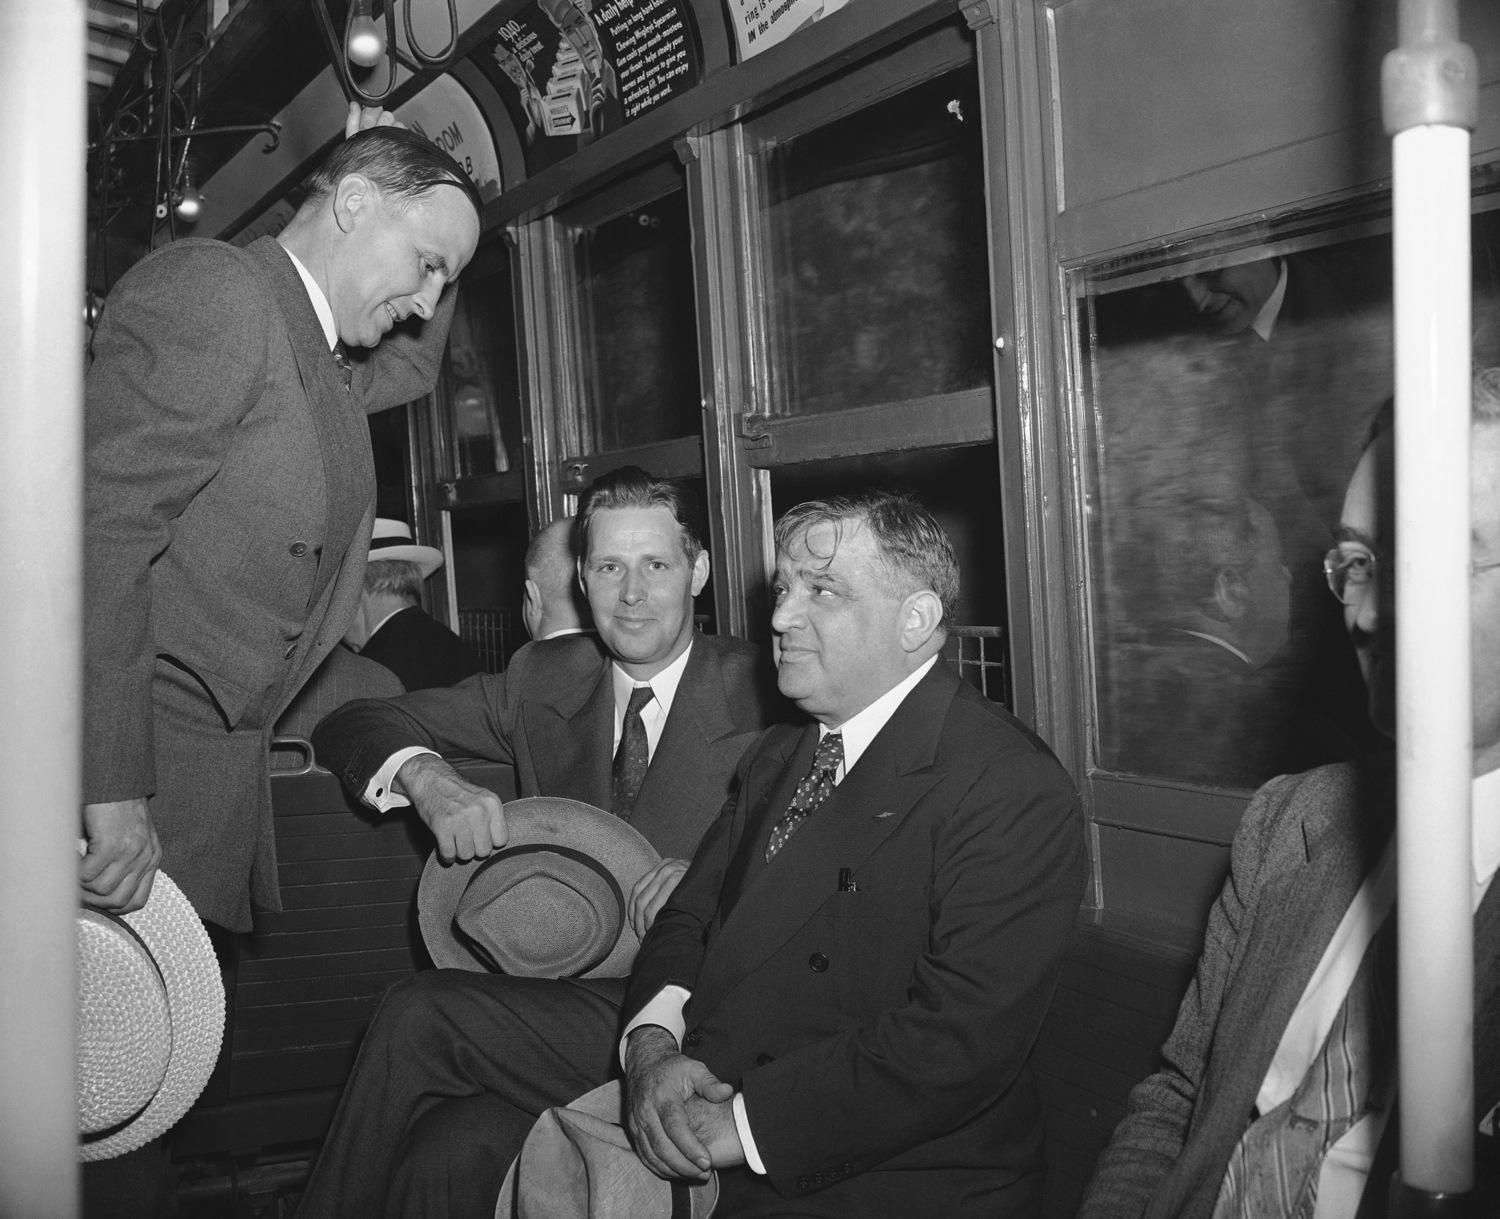 Mayor John F. Carr of Medford, Mass., Mayor Maurice J. Tobin of Boston, and Mayor Fiorello La Guardia of New York, left to right, take a subway to go from City Hall to their hotel for lunch in New York, Aug. 5, 1942, after conferring with mayors of Atlantic Coast cities on gasoline and fuel problems for the northeast.